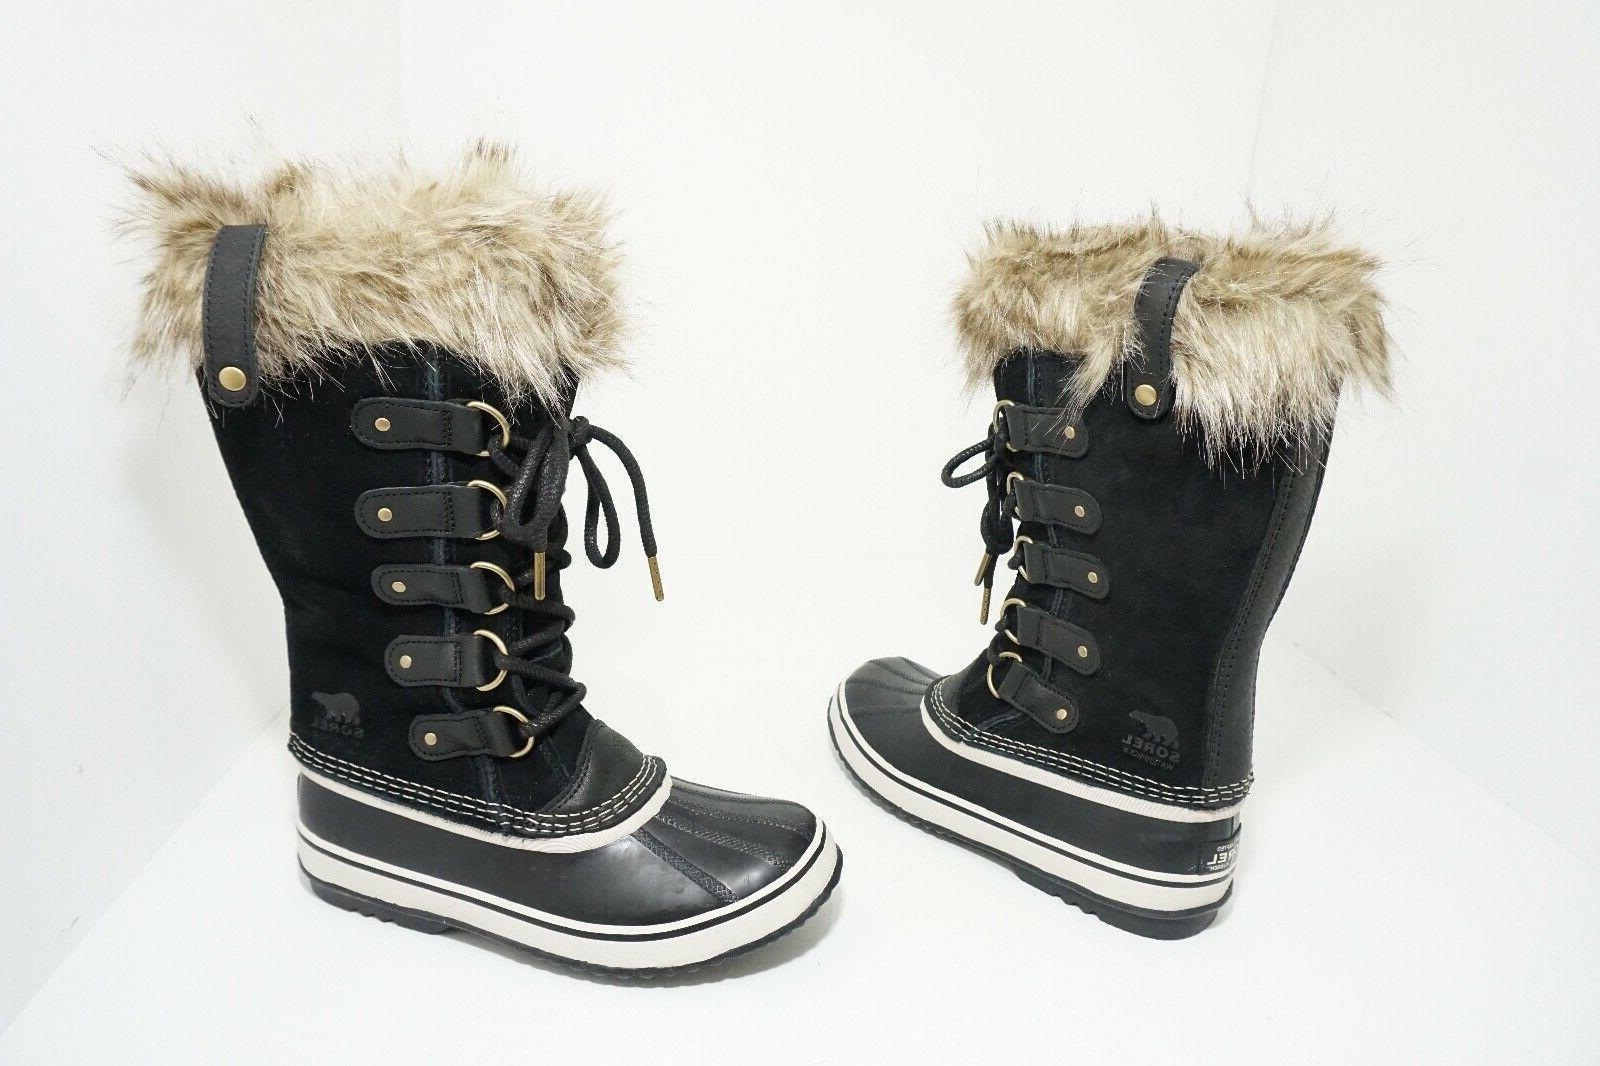 Women's Sorel 'Joan Of Arctic' Waterproof Snow Boot, Size 7.